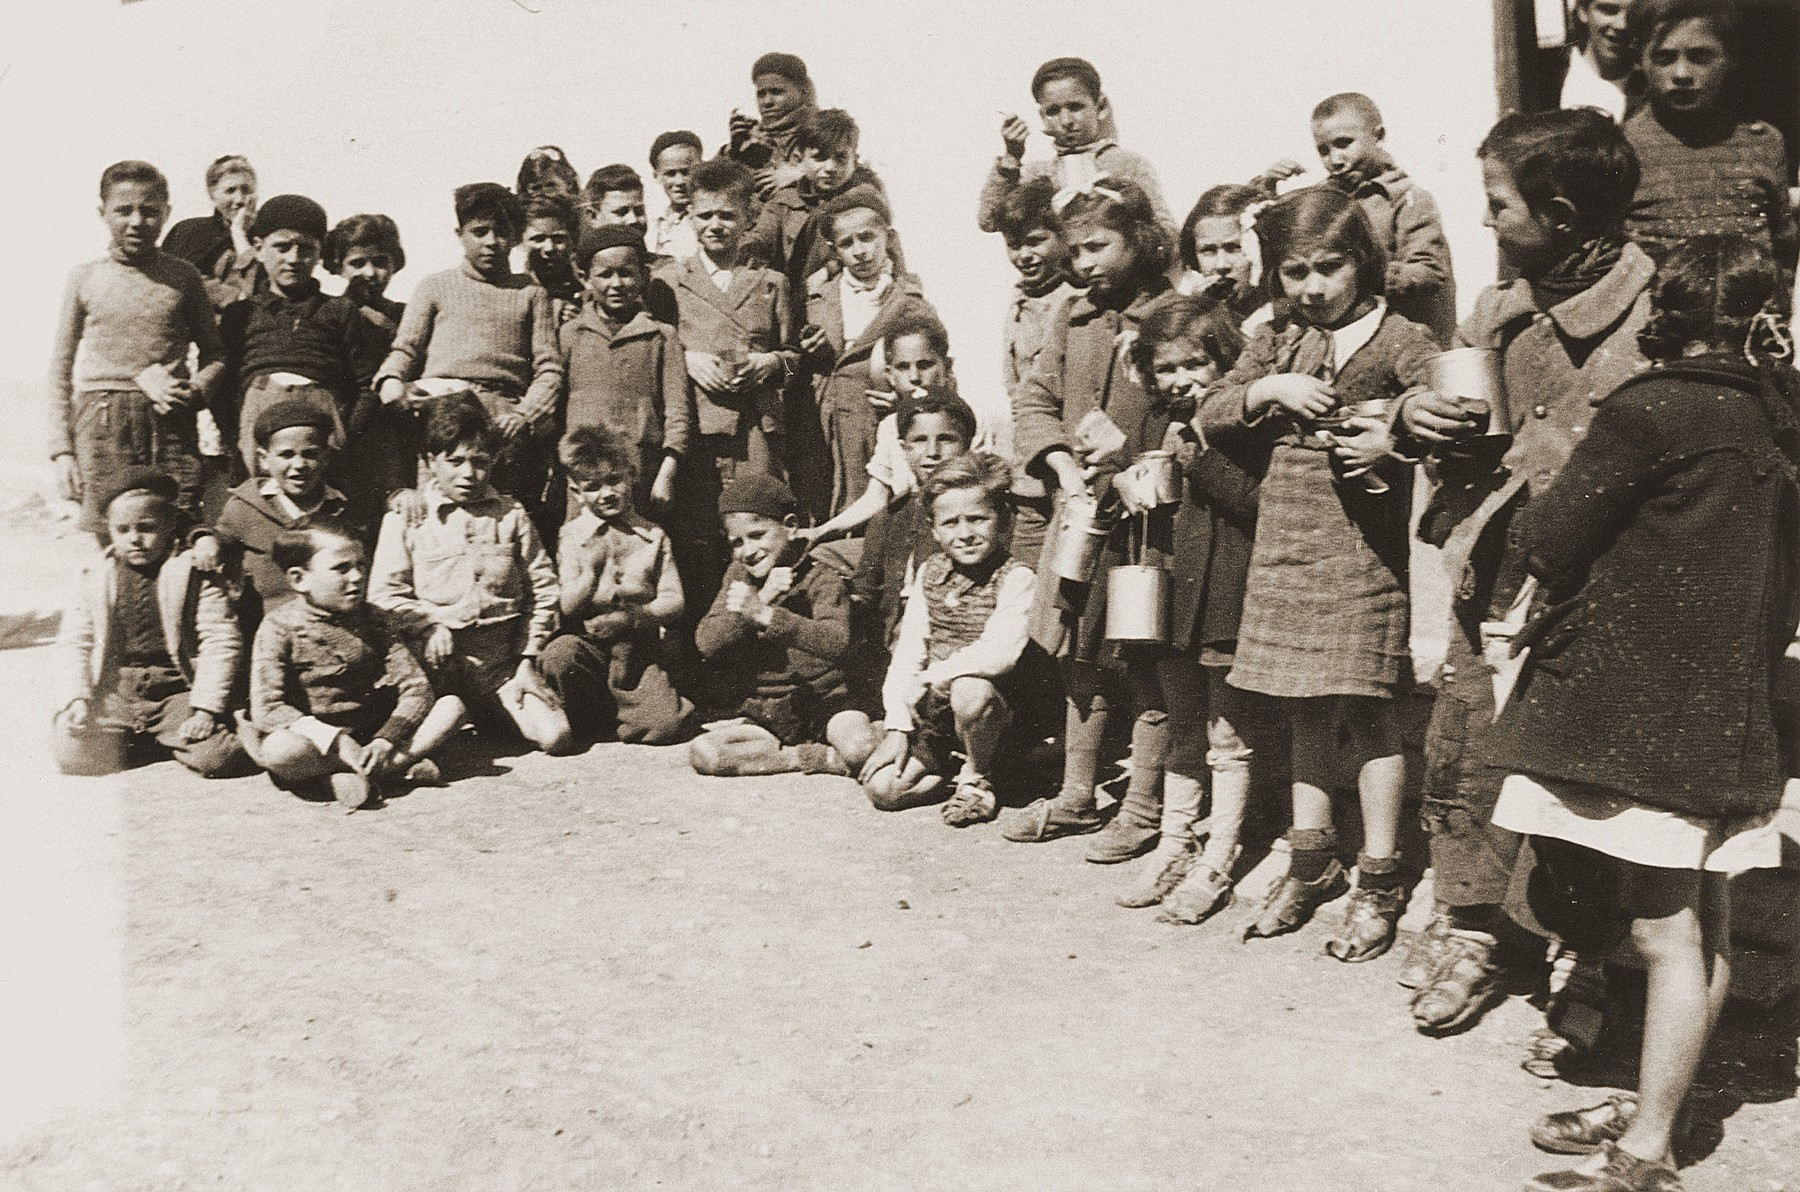 Group portrait of children at Rivesaltes on the eve of their departure for the Chateau de Montluel children's home near Lyon.